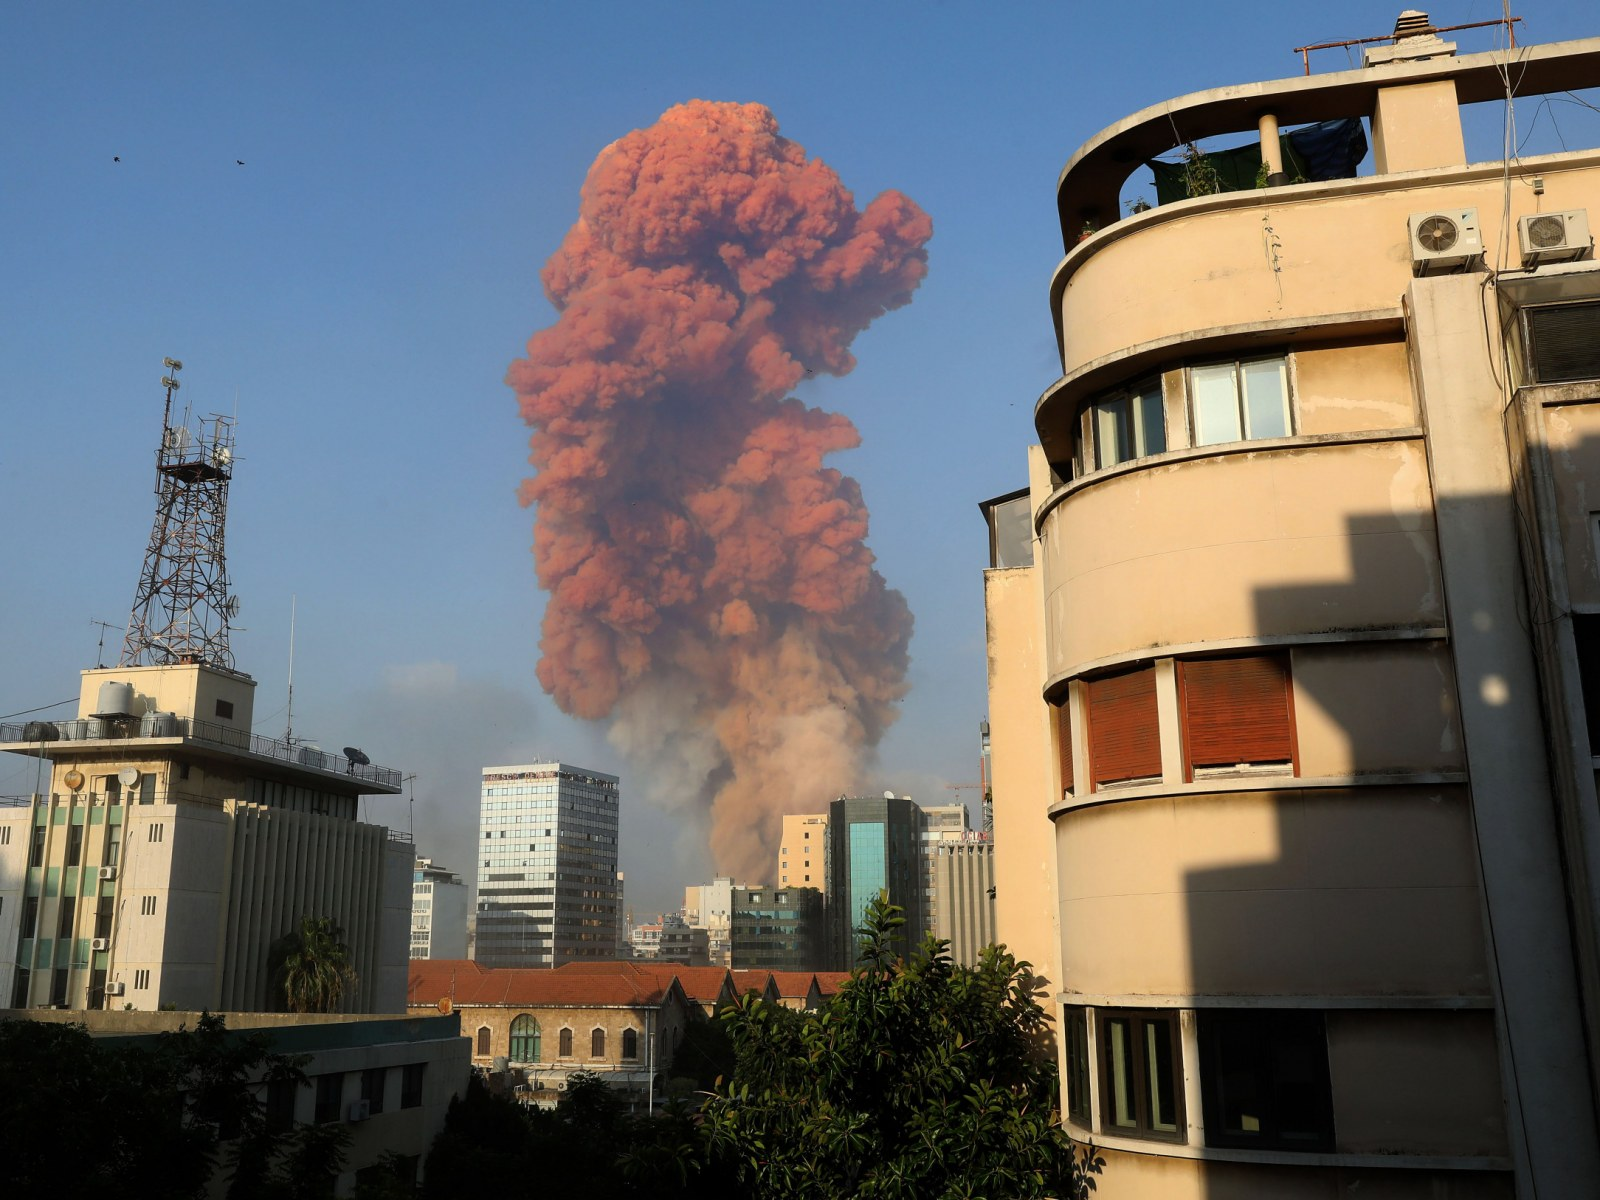 Featured image: The Beirut explosion shockwave